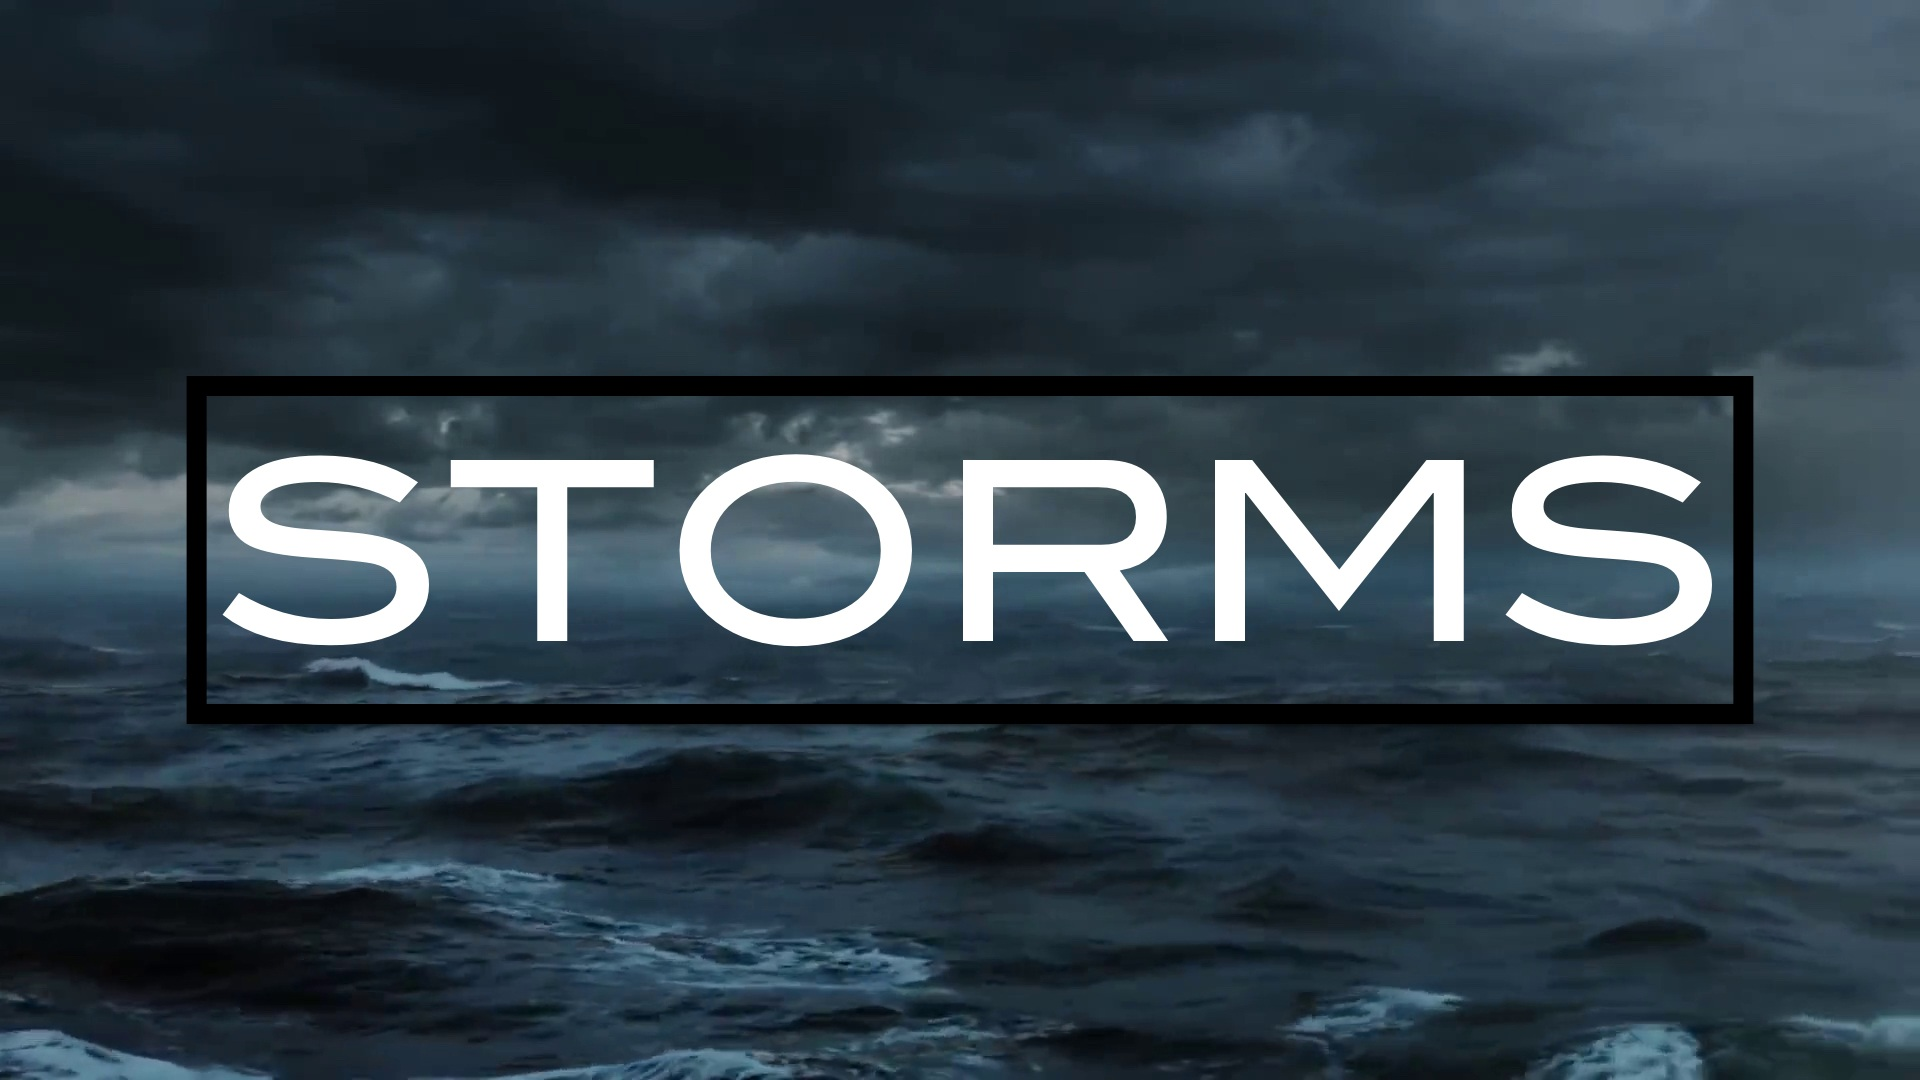 STORMS LOGO.001.jpeg